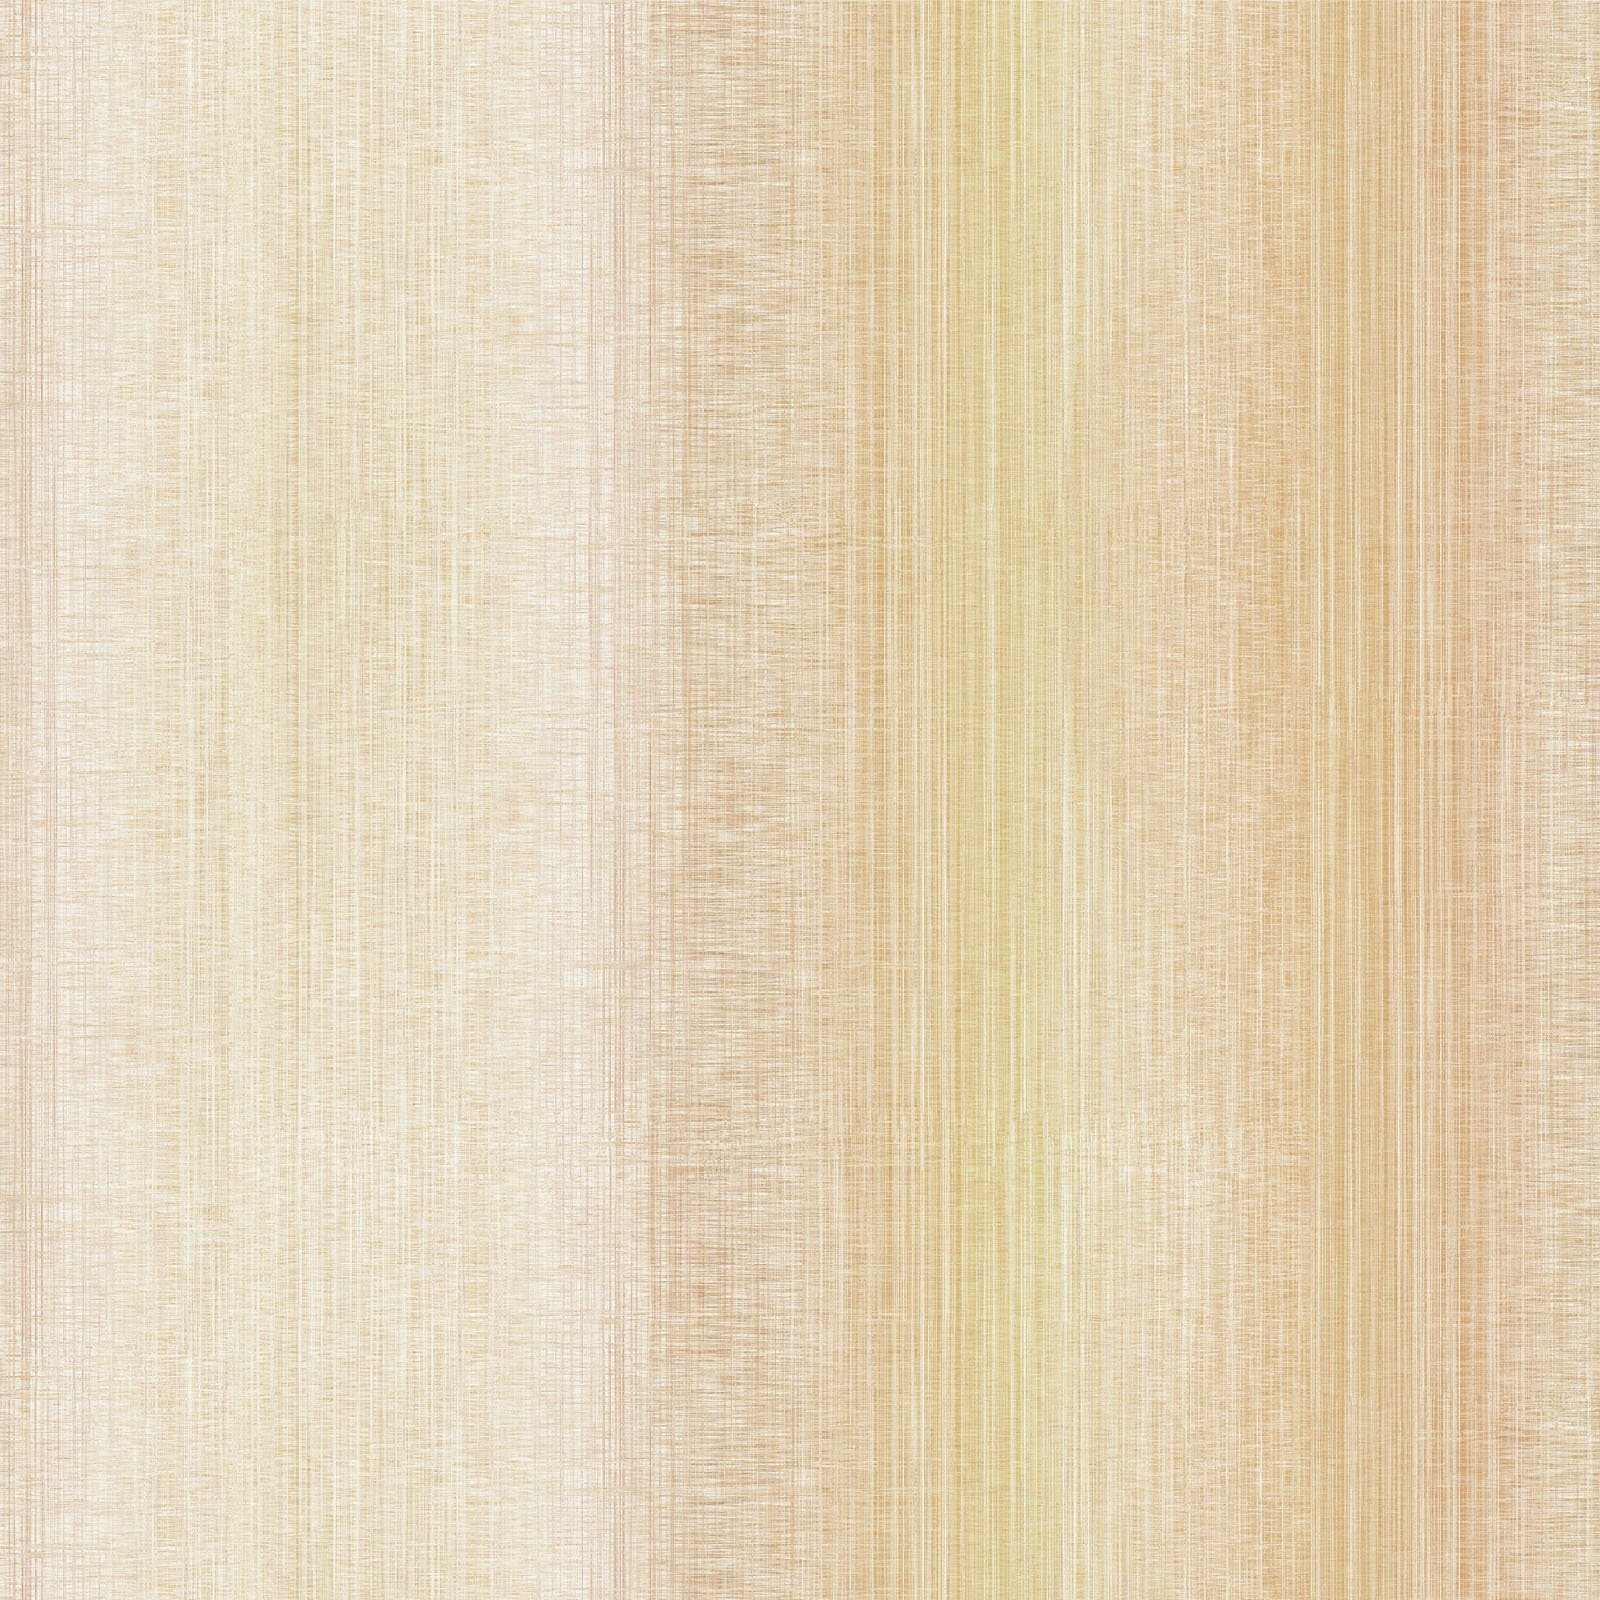 OMBR-4498 NE - OMBRE 108 DIGITAL BY P&B BOUTIQUE NEUTRAL/CREAM - ARRIVING IN AUGUST 2021